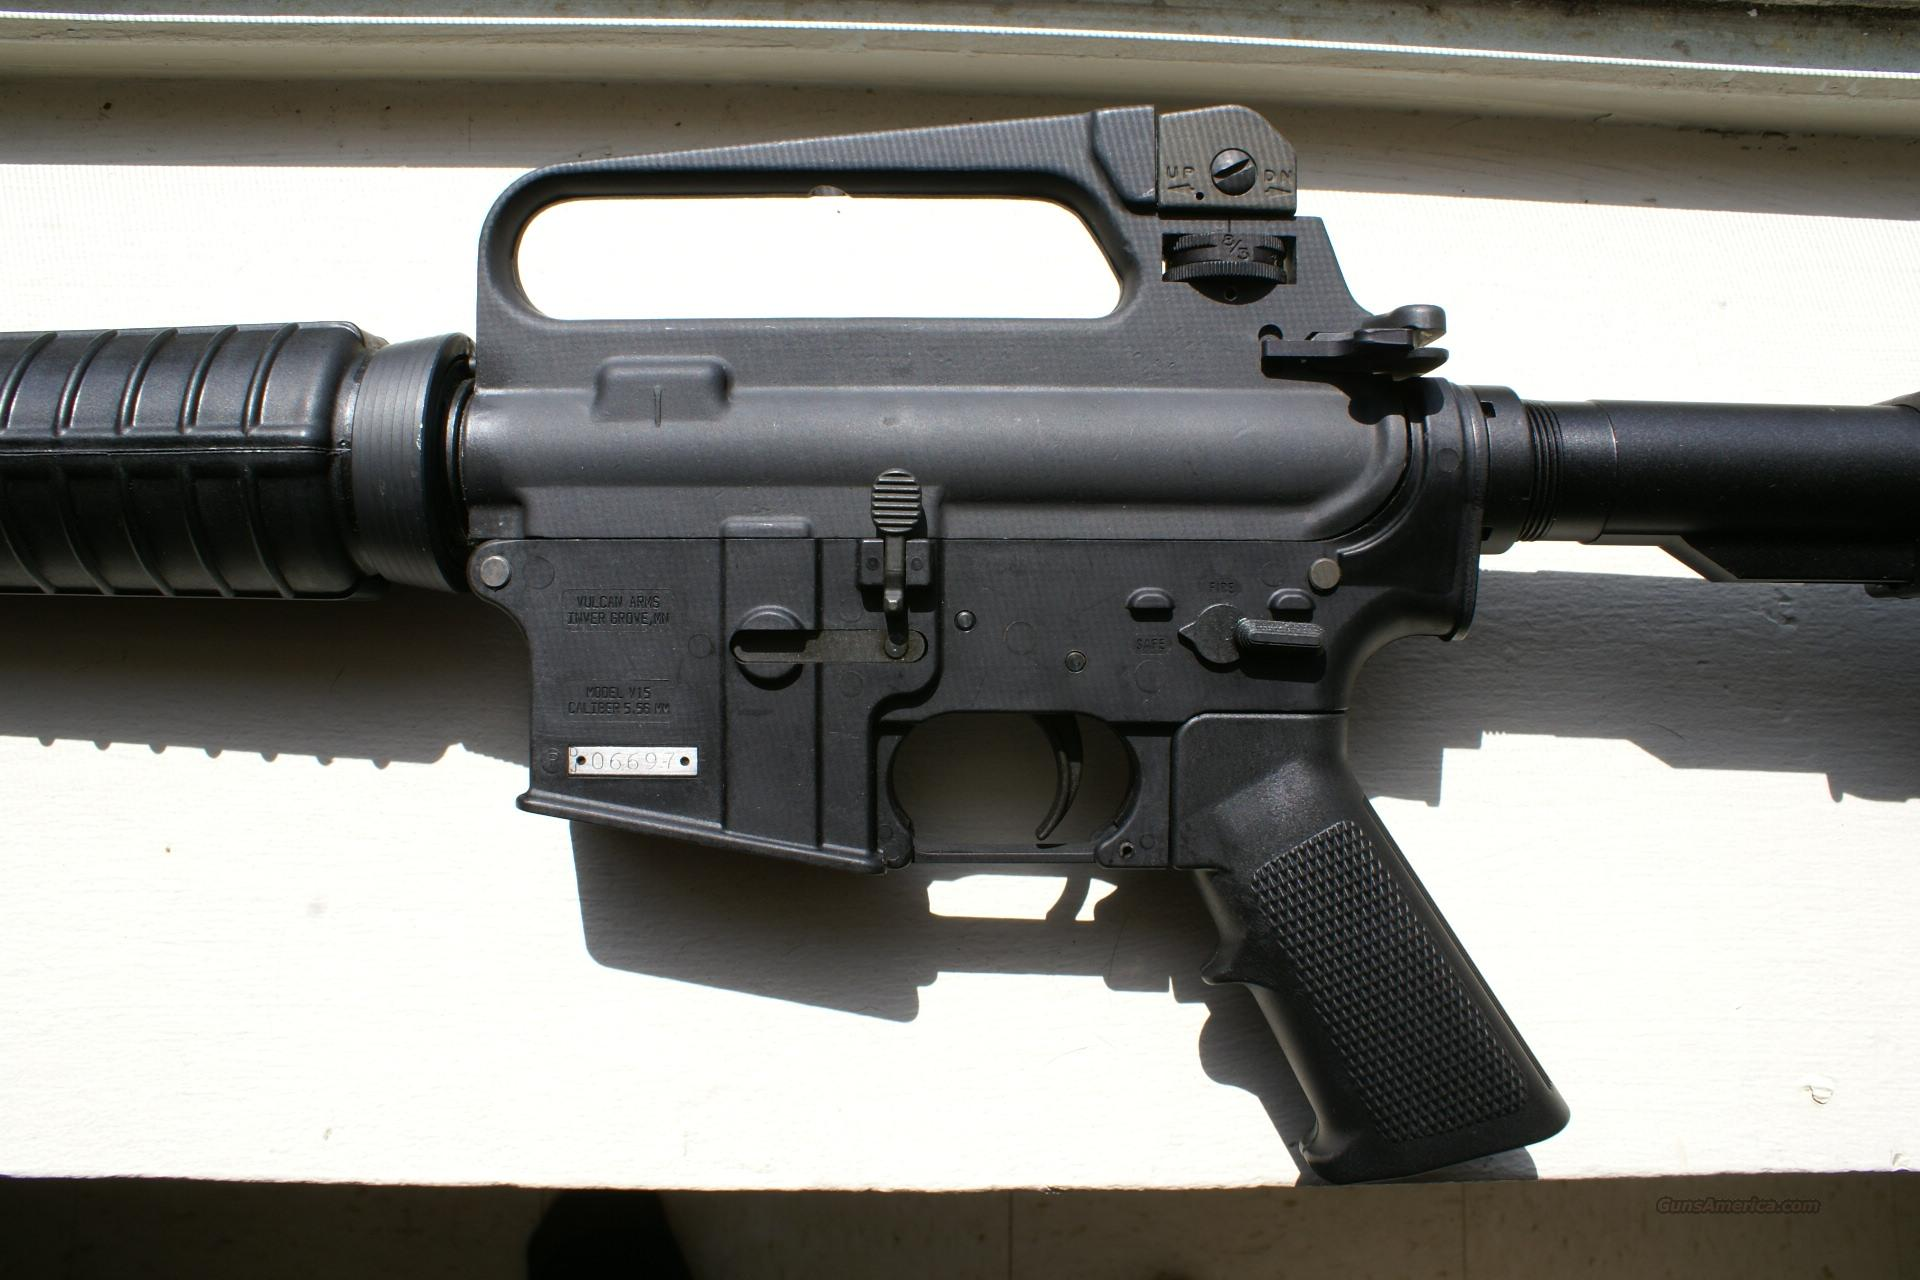 AR-15 COLT UPPER/VULCAN ARMS L/W LOWER  Guns > Rifles > AR-15 Rifles - Small Manufacturers > Complete Rifle